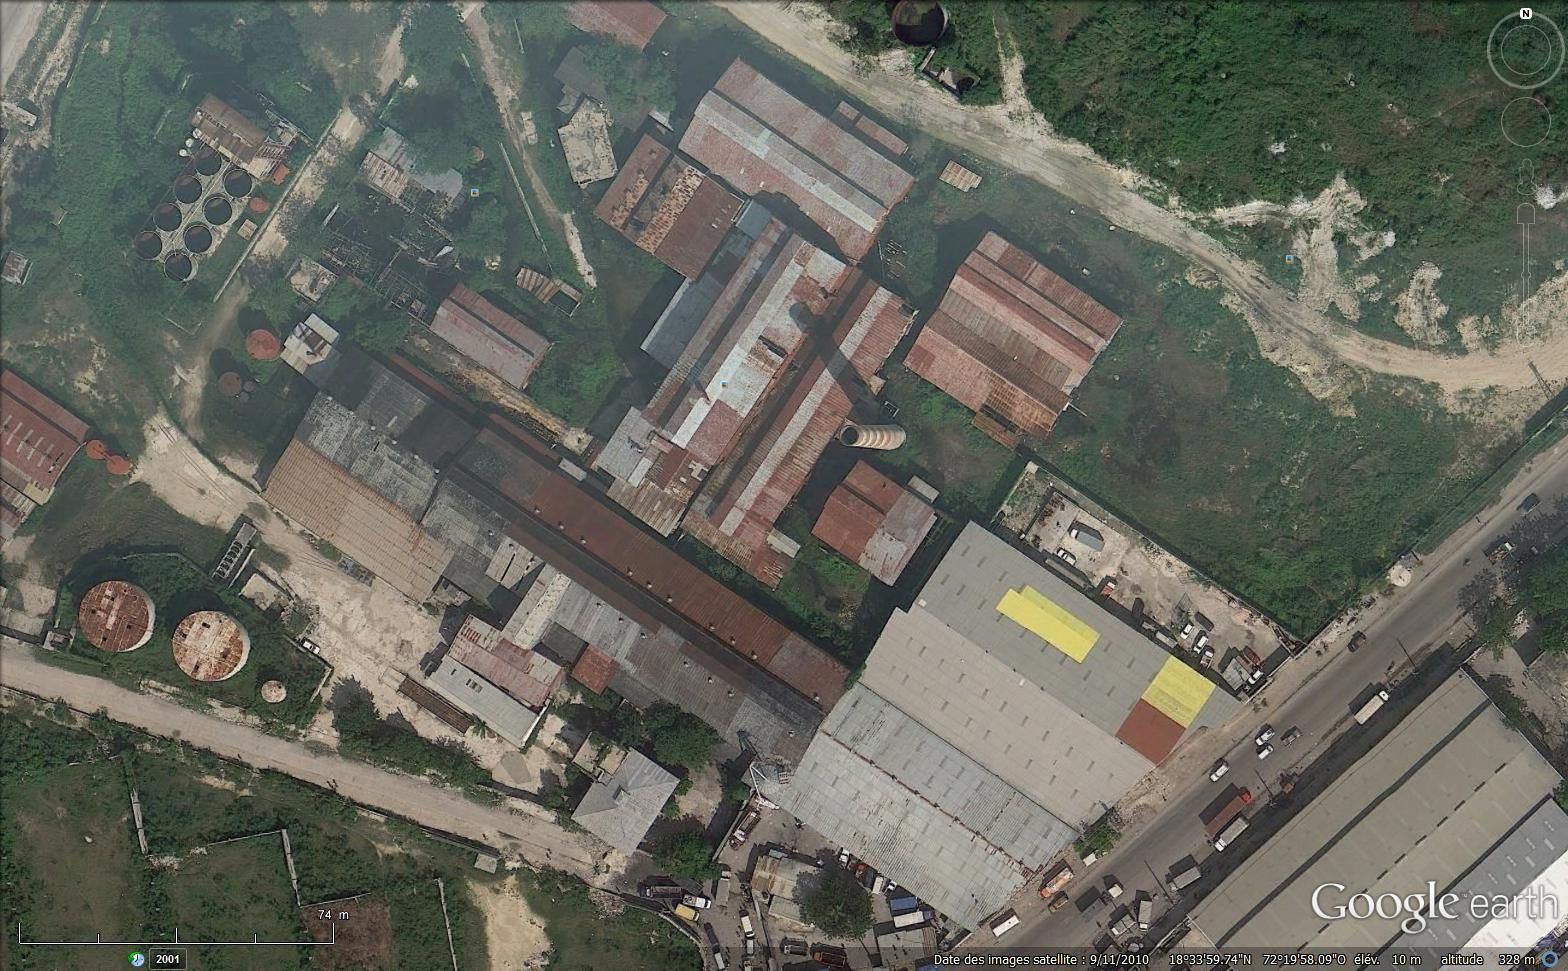 Les ruines de l'usine via Google earth en 2015